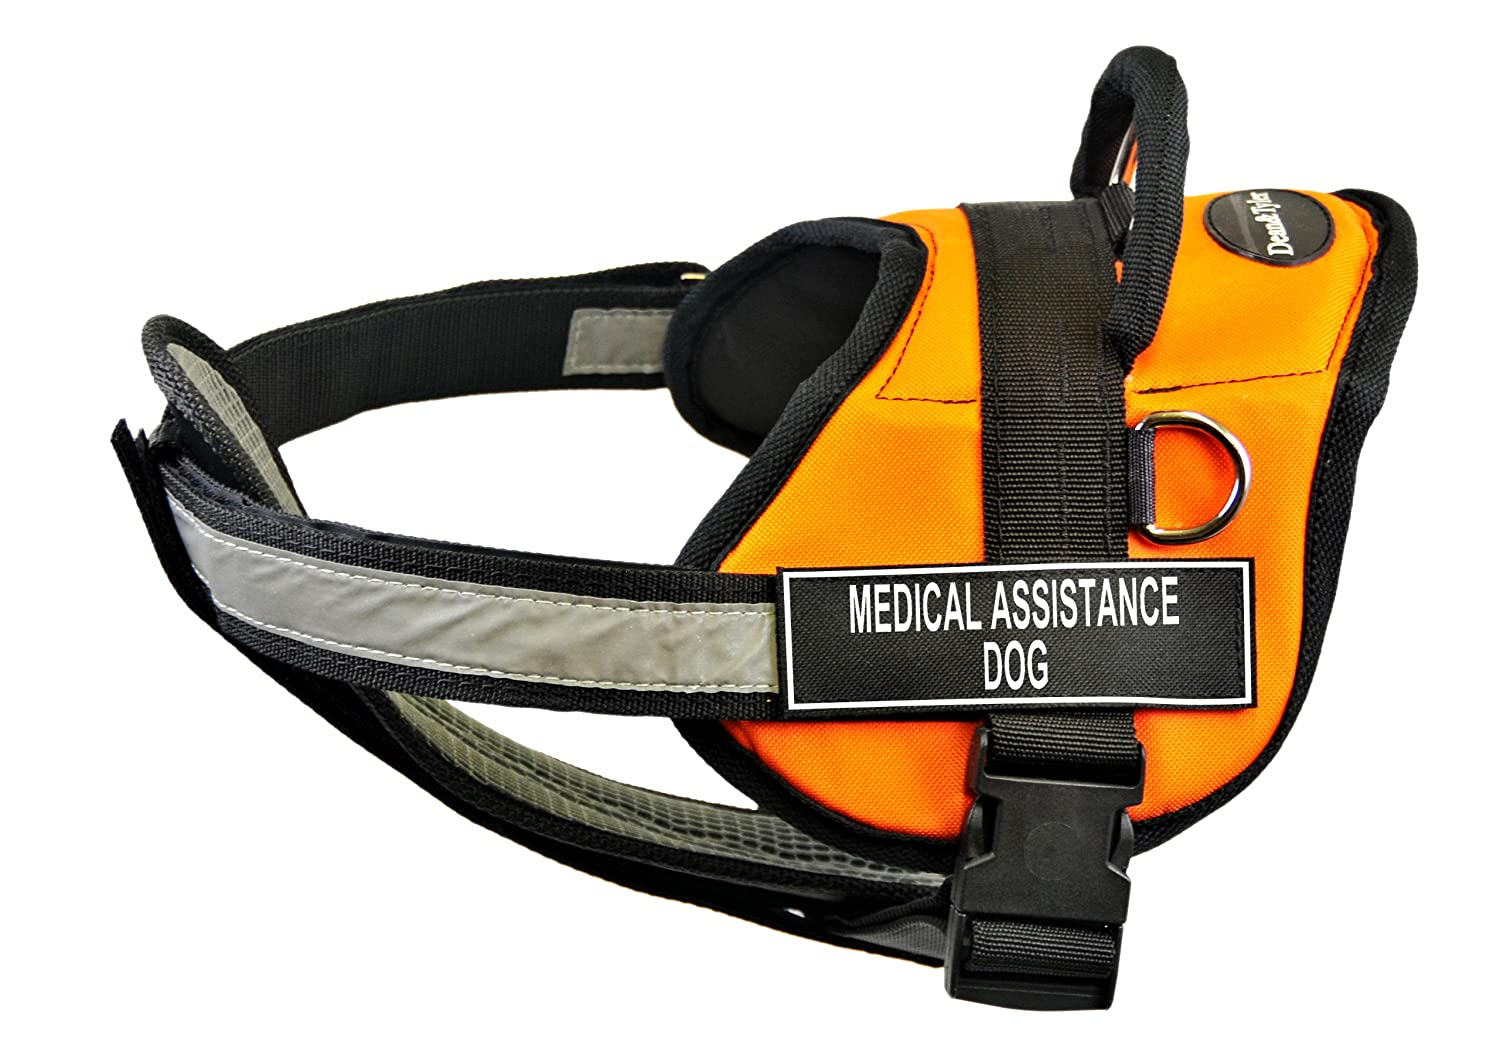 Dean & Tyler 25-Inch to 34-Inch Medical Assistance Dog Harness with Padded Reflective Chest Straps, Small, orange Black